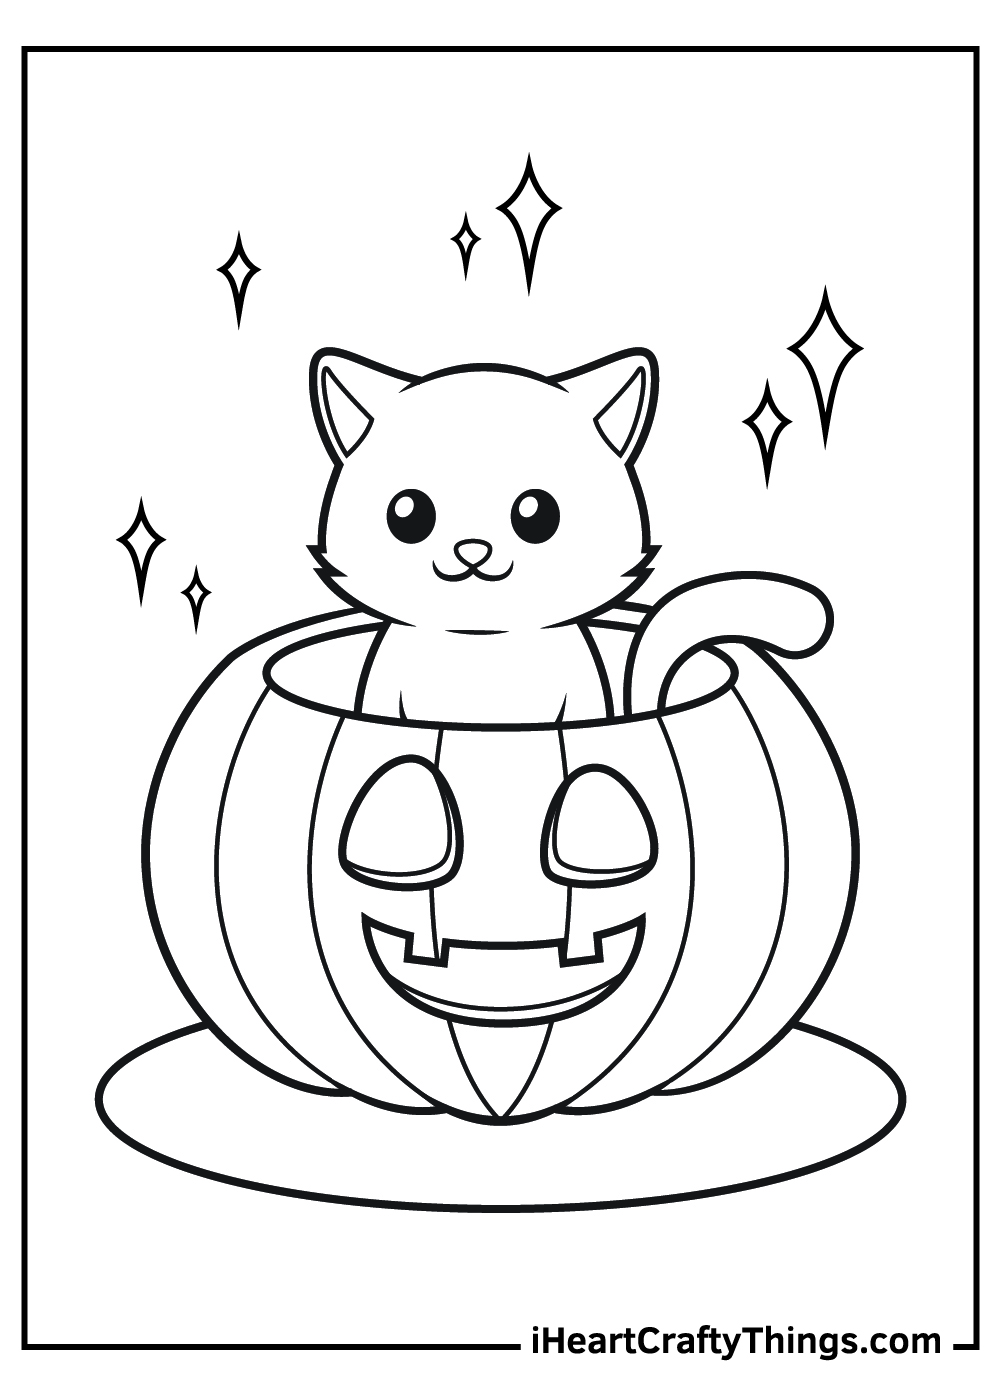 cute simple jack o lantern coloring pages